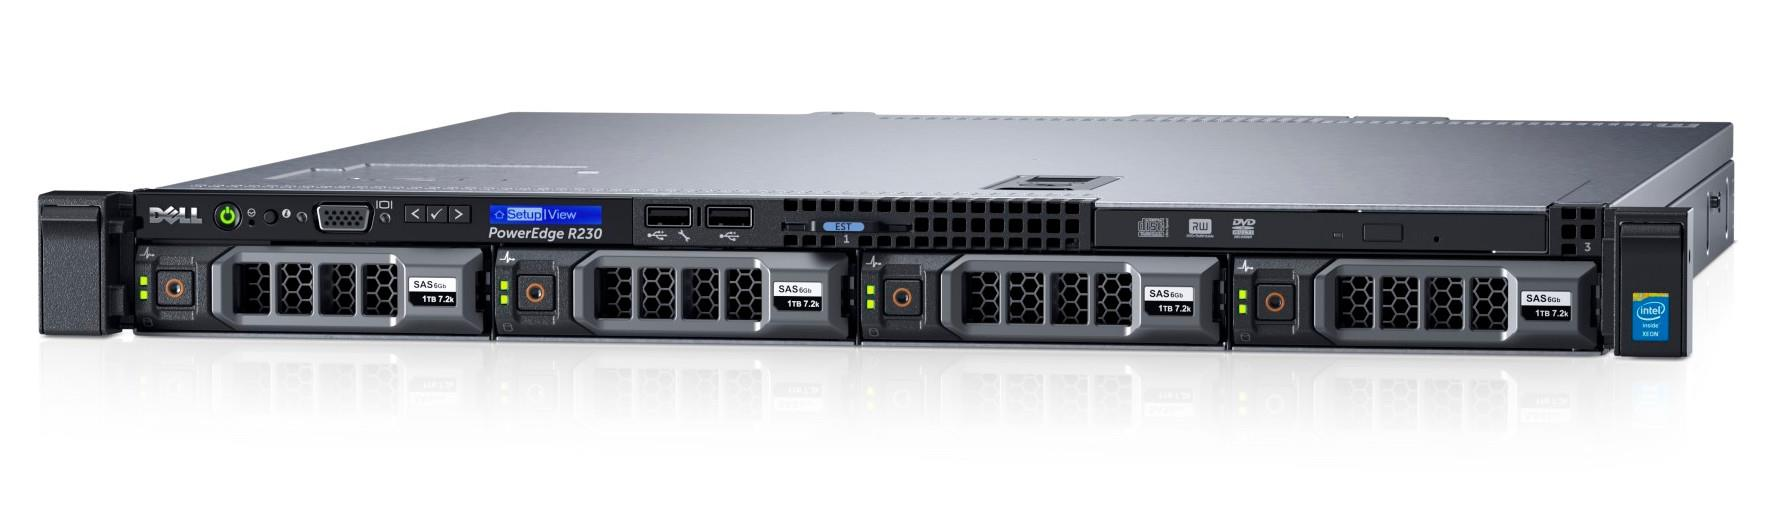 MÁY CHỦ DELL POWEREDGE R230 E3-1220 V5 ( 3.10 GHz, 4 core/ 4 threads )